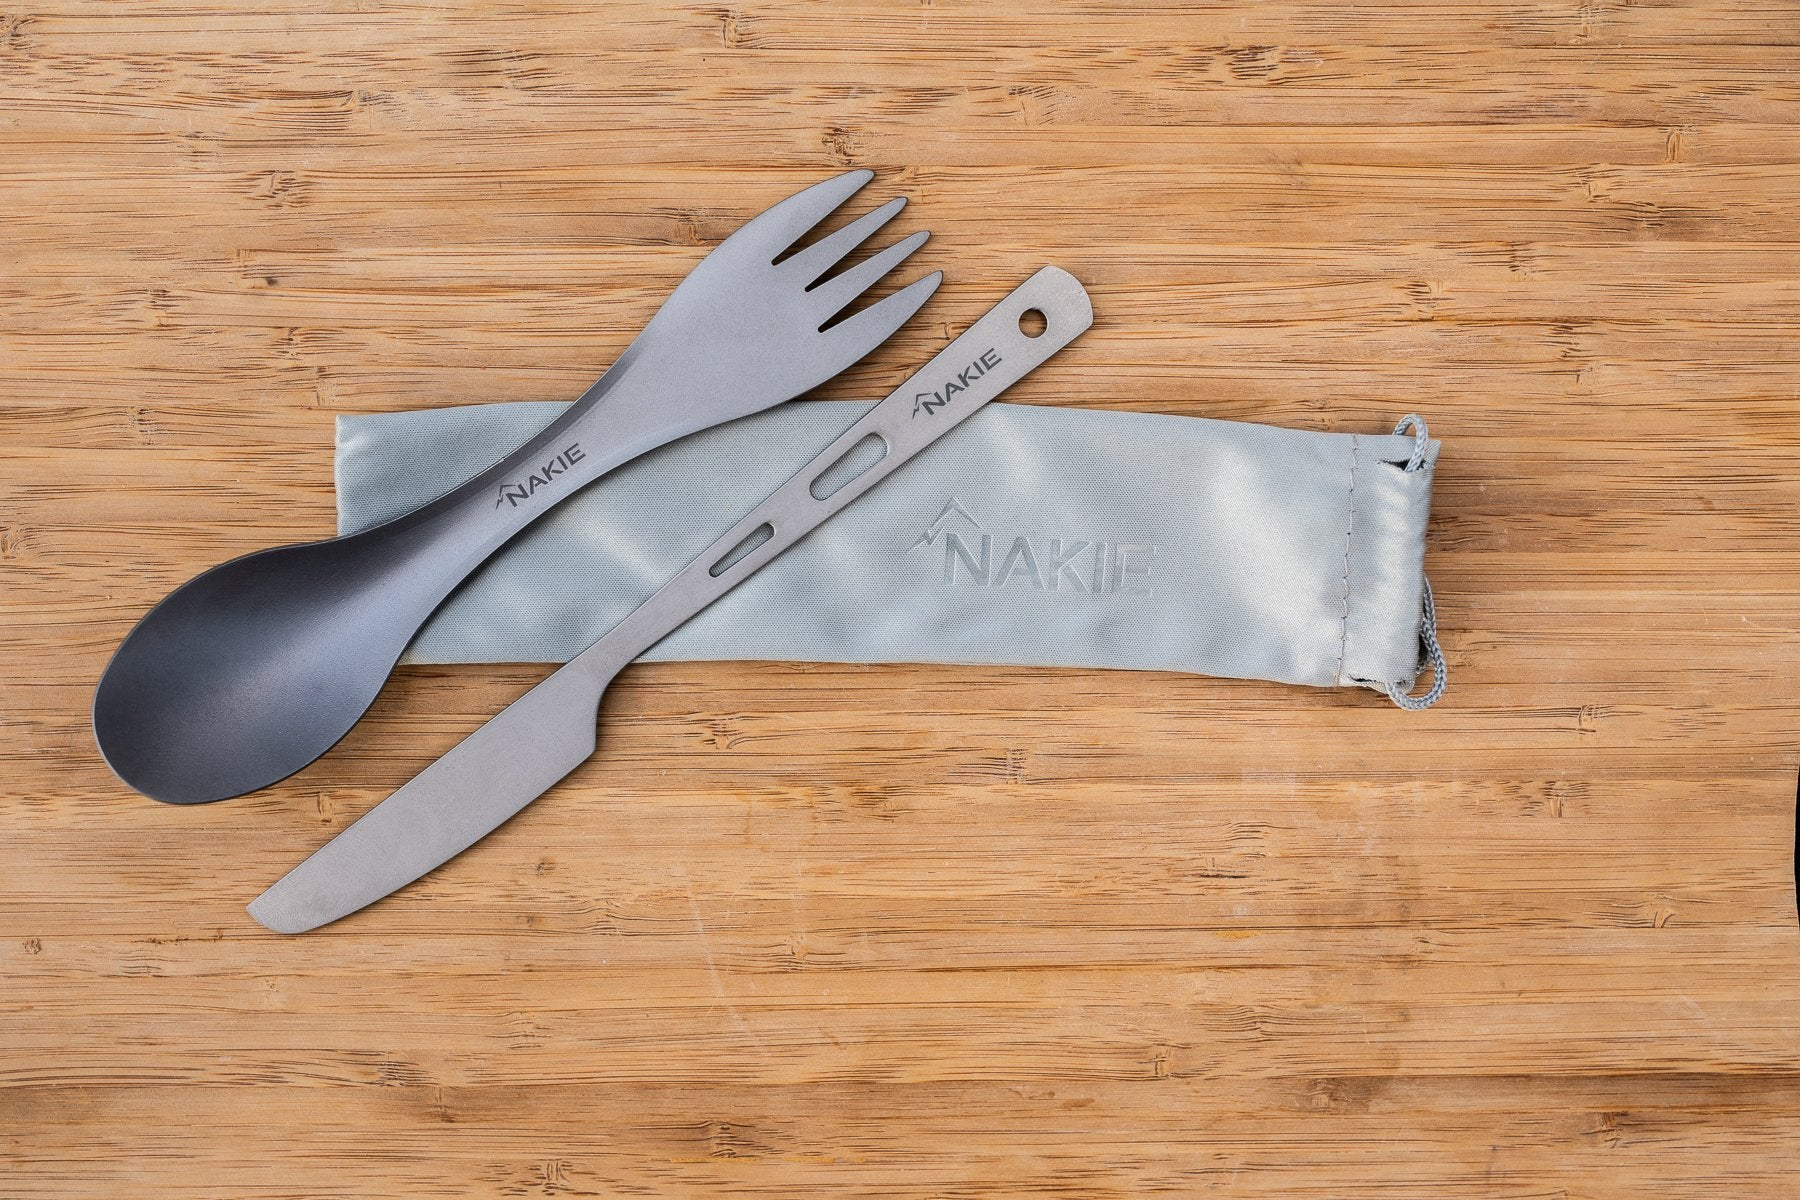 The perfect meal companion for backpacking, traveling, and everyday use.